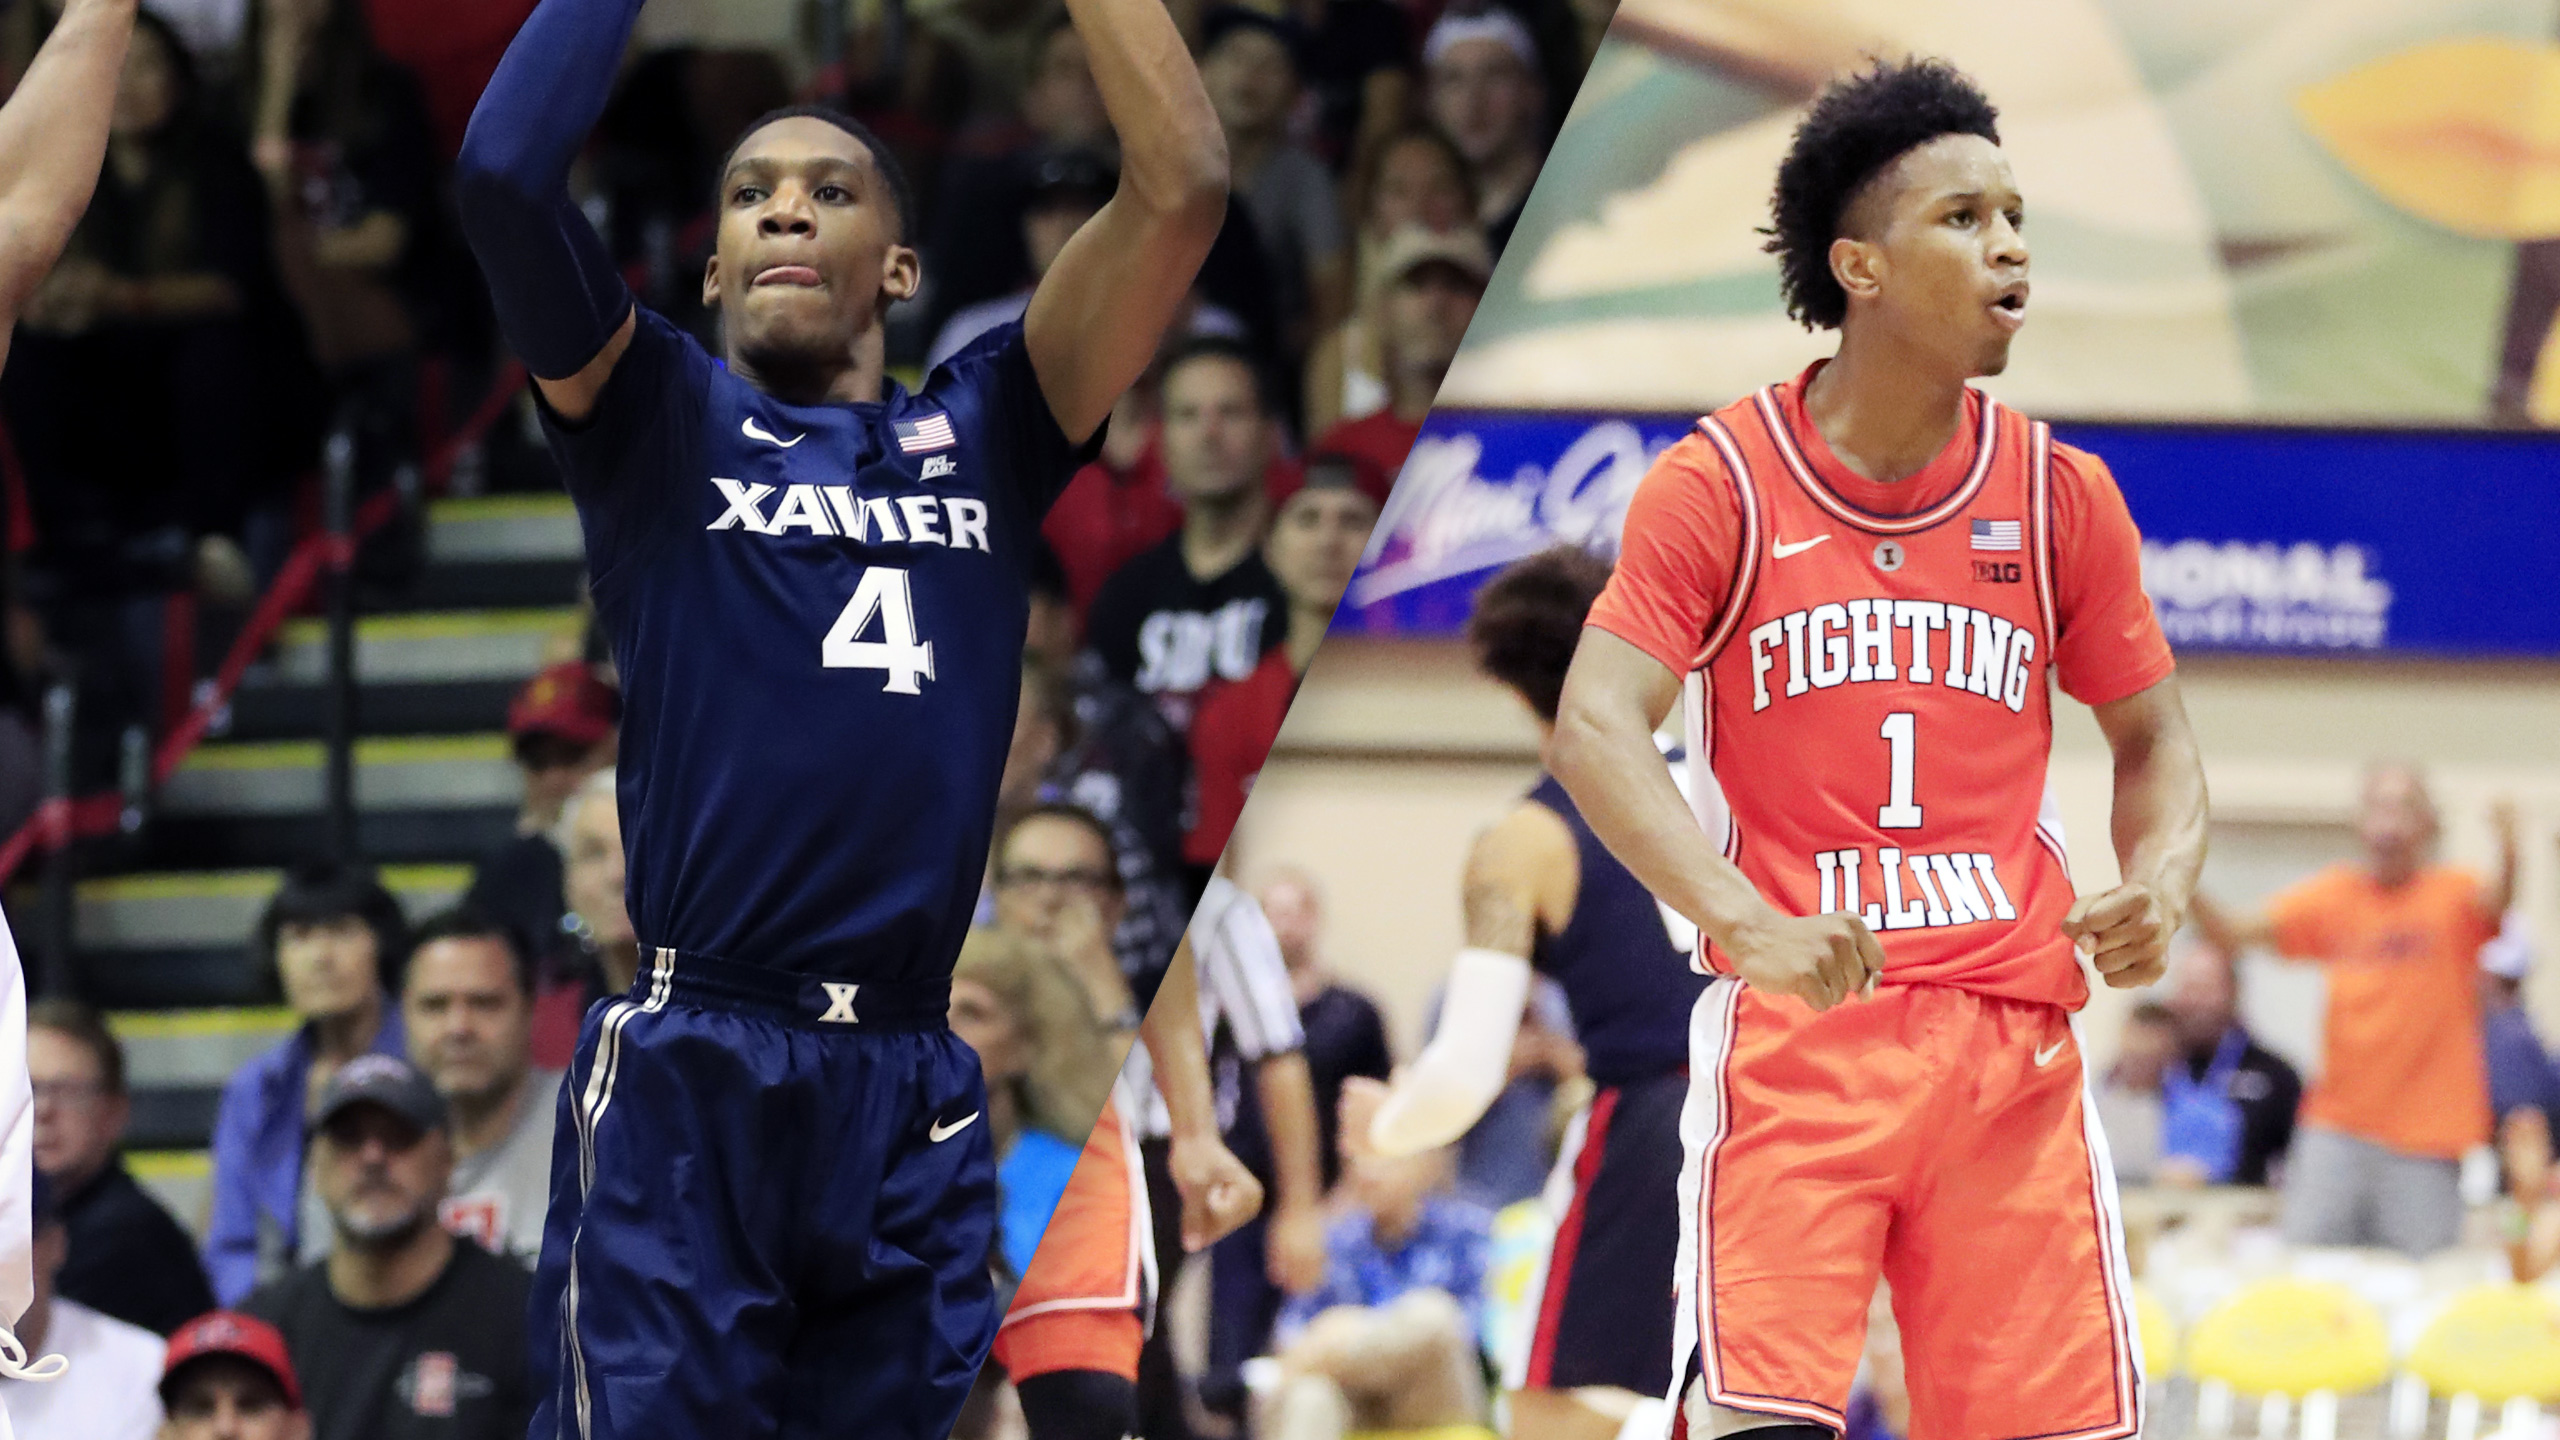 Xavier vs. Illinois (7th Place Game) (Maui Jim Maui Invitational)